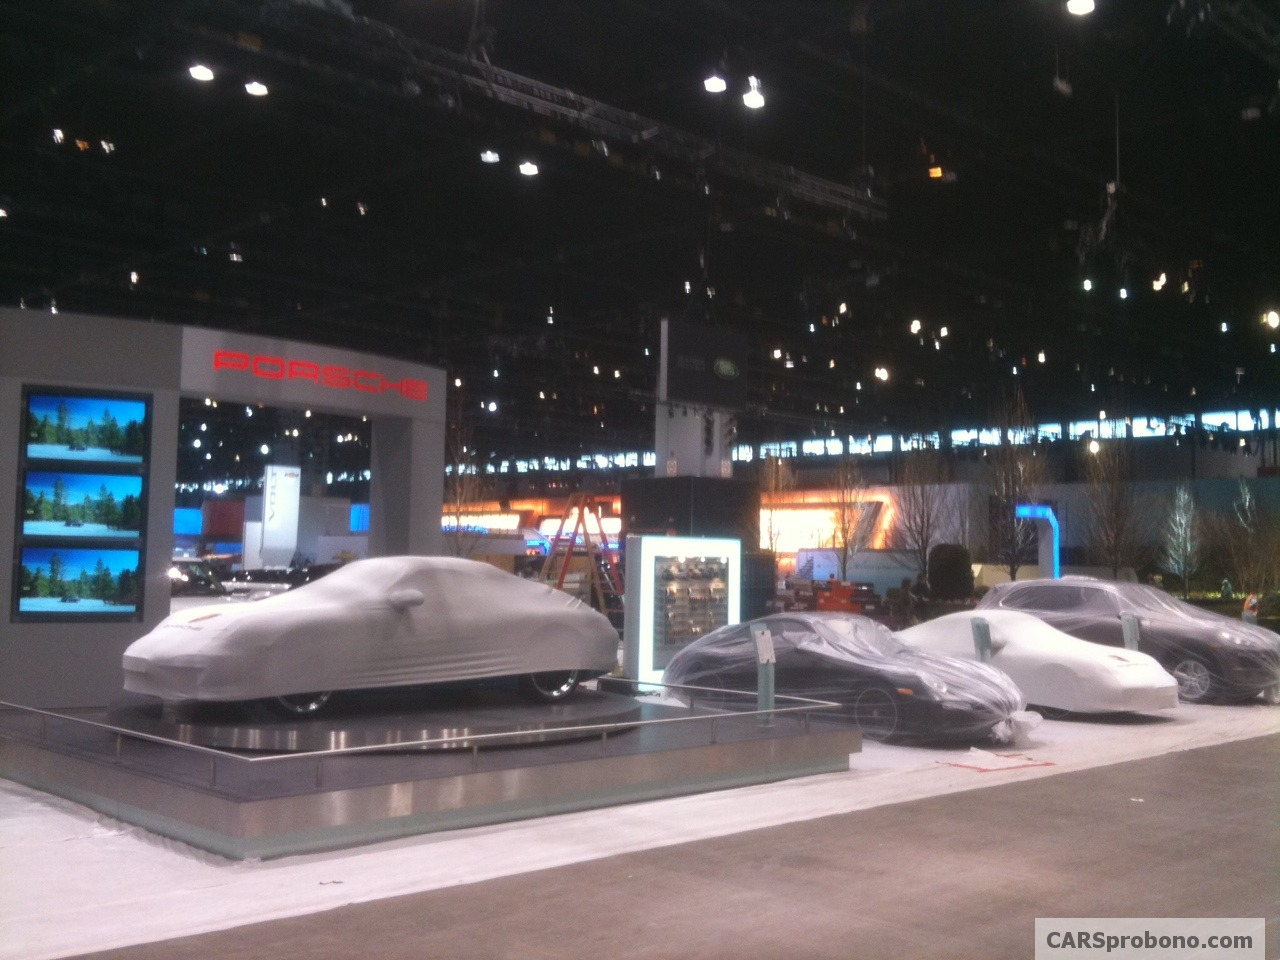 Porsche Preparing for Chicago Auto Show